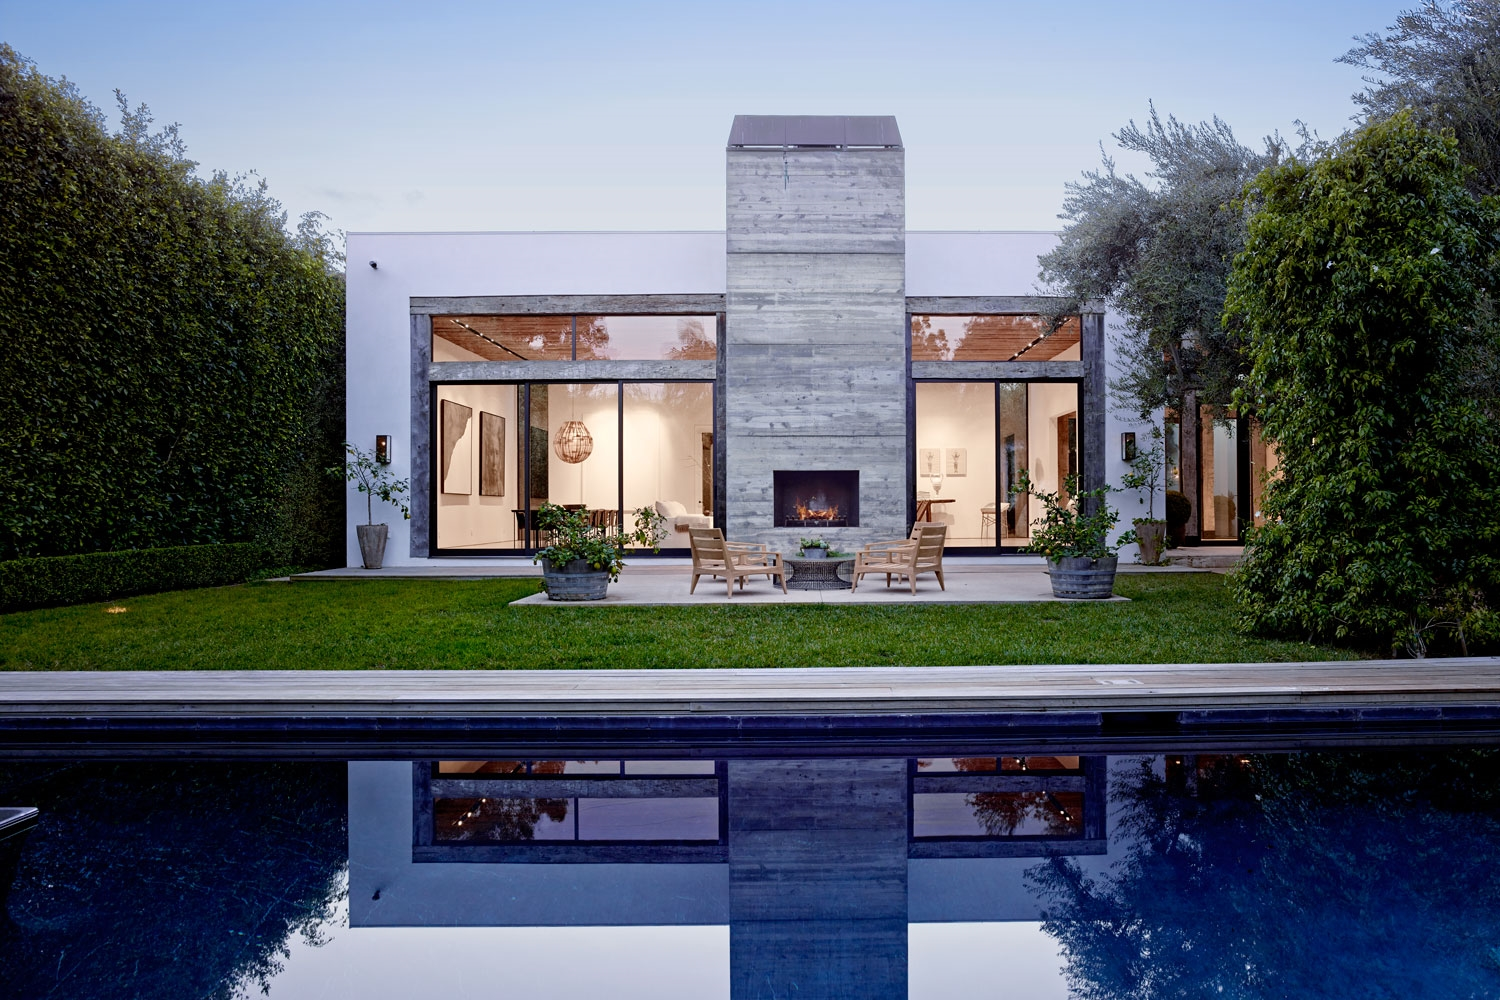 Beverly Hills Residence - Architectural Design // previous work by Alex Babich for Standard Arch